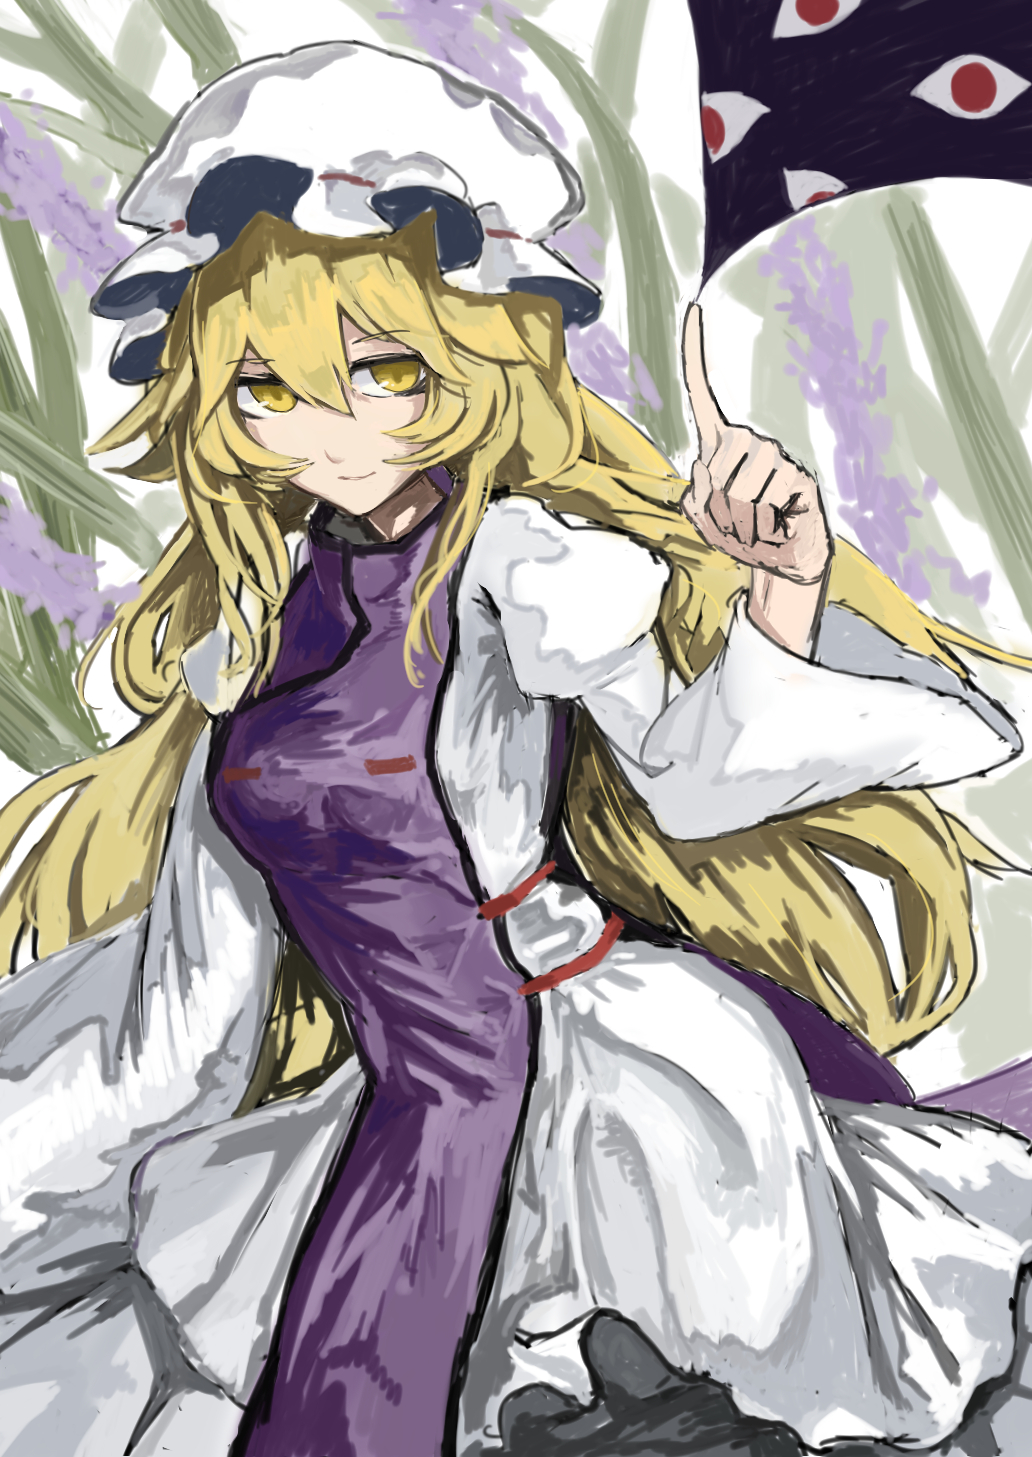 1girl blonde_hair dress eyes gap highres long_hair mob_cap smile tabard touhou wide_sleeves yakumo_yukari yellow_eyes zeikomi